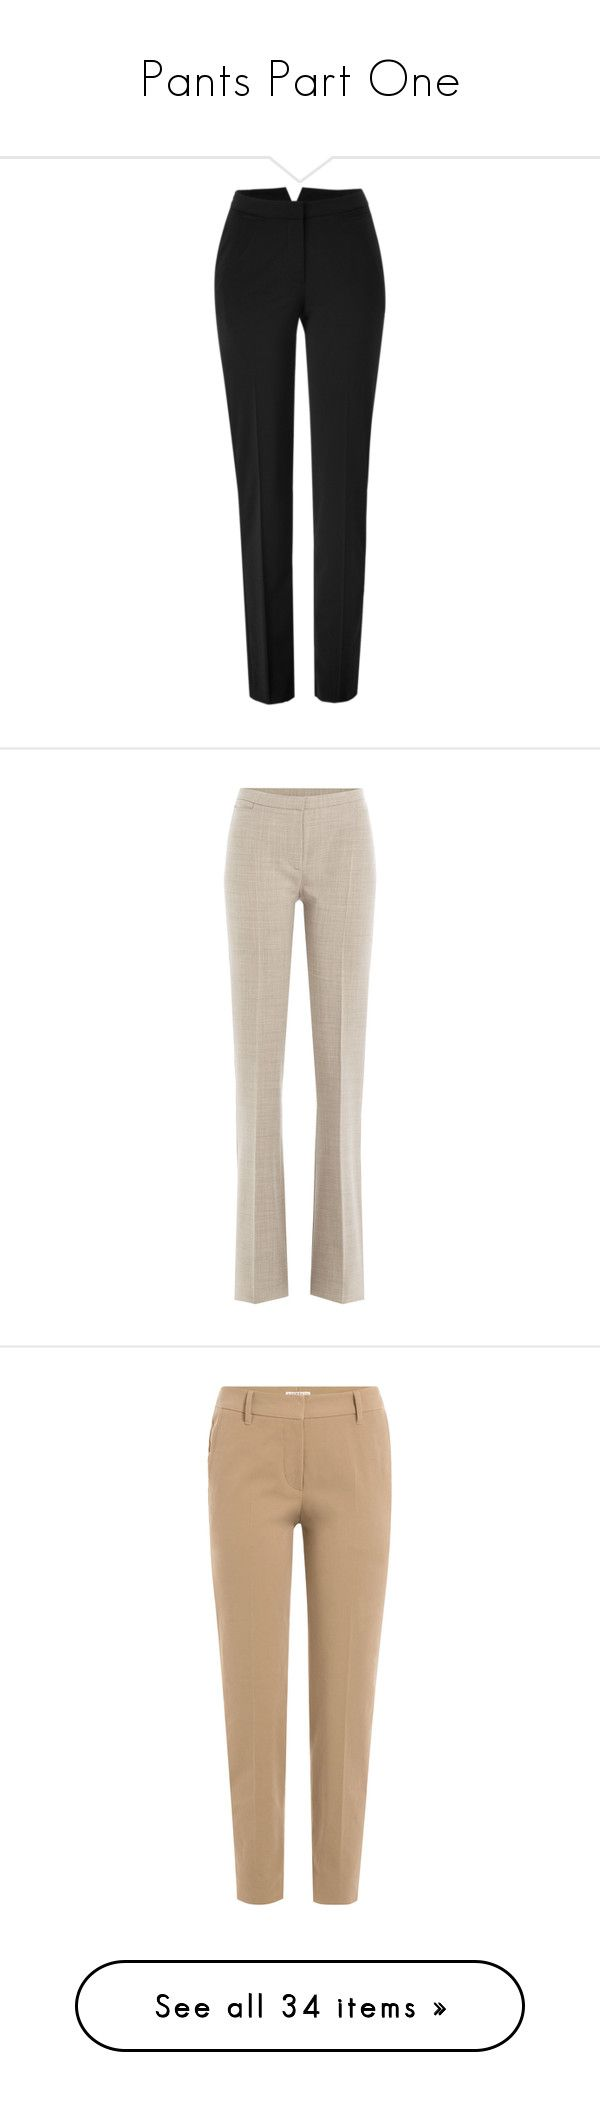 """Pants Part One"" by k-amelia on Polyvore featuring pants, slim fitted pants, flat front tuxedo pants, slim pants, slim fit tuxedo suit, tuxedo pants, gucci, slim fit pants, flare trousers and slim fit trousers"